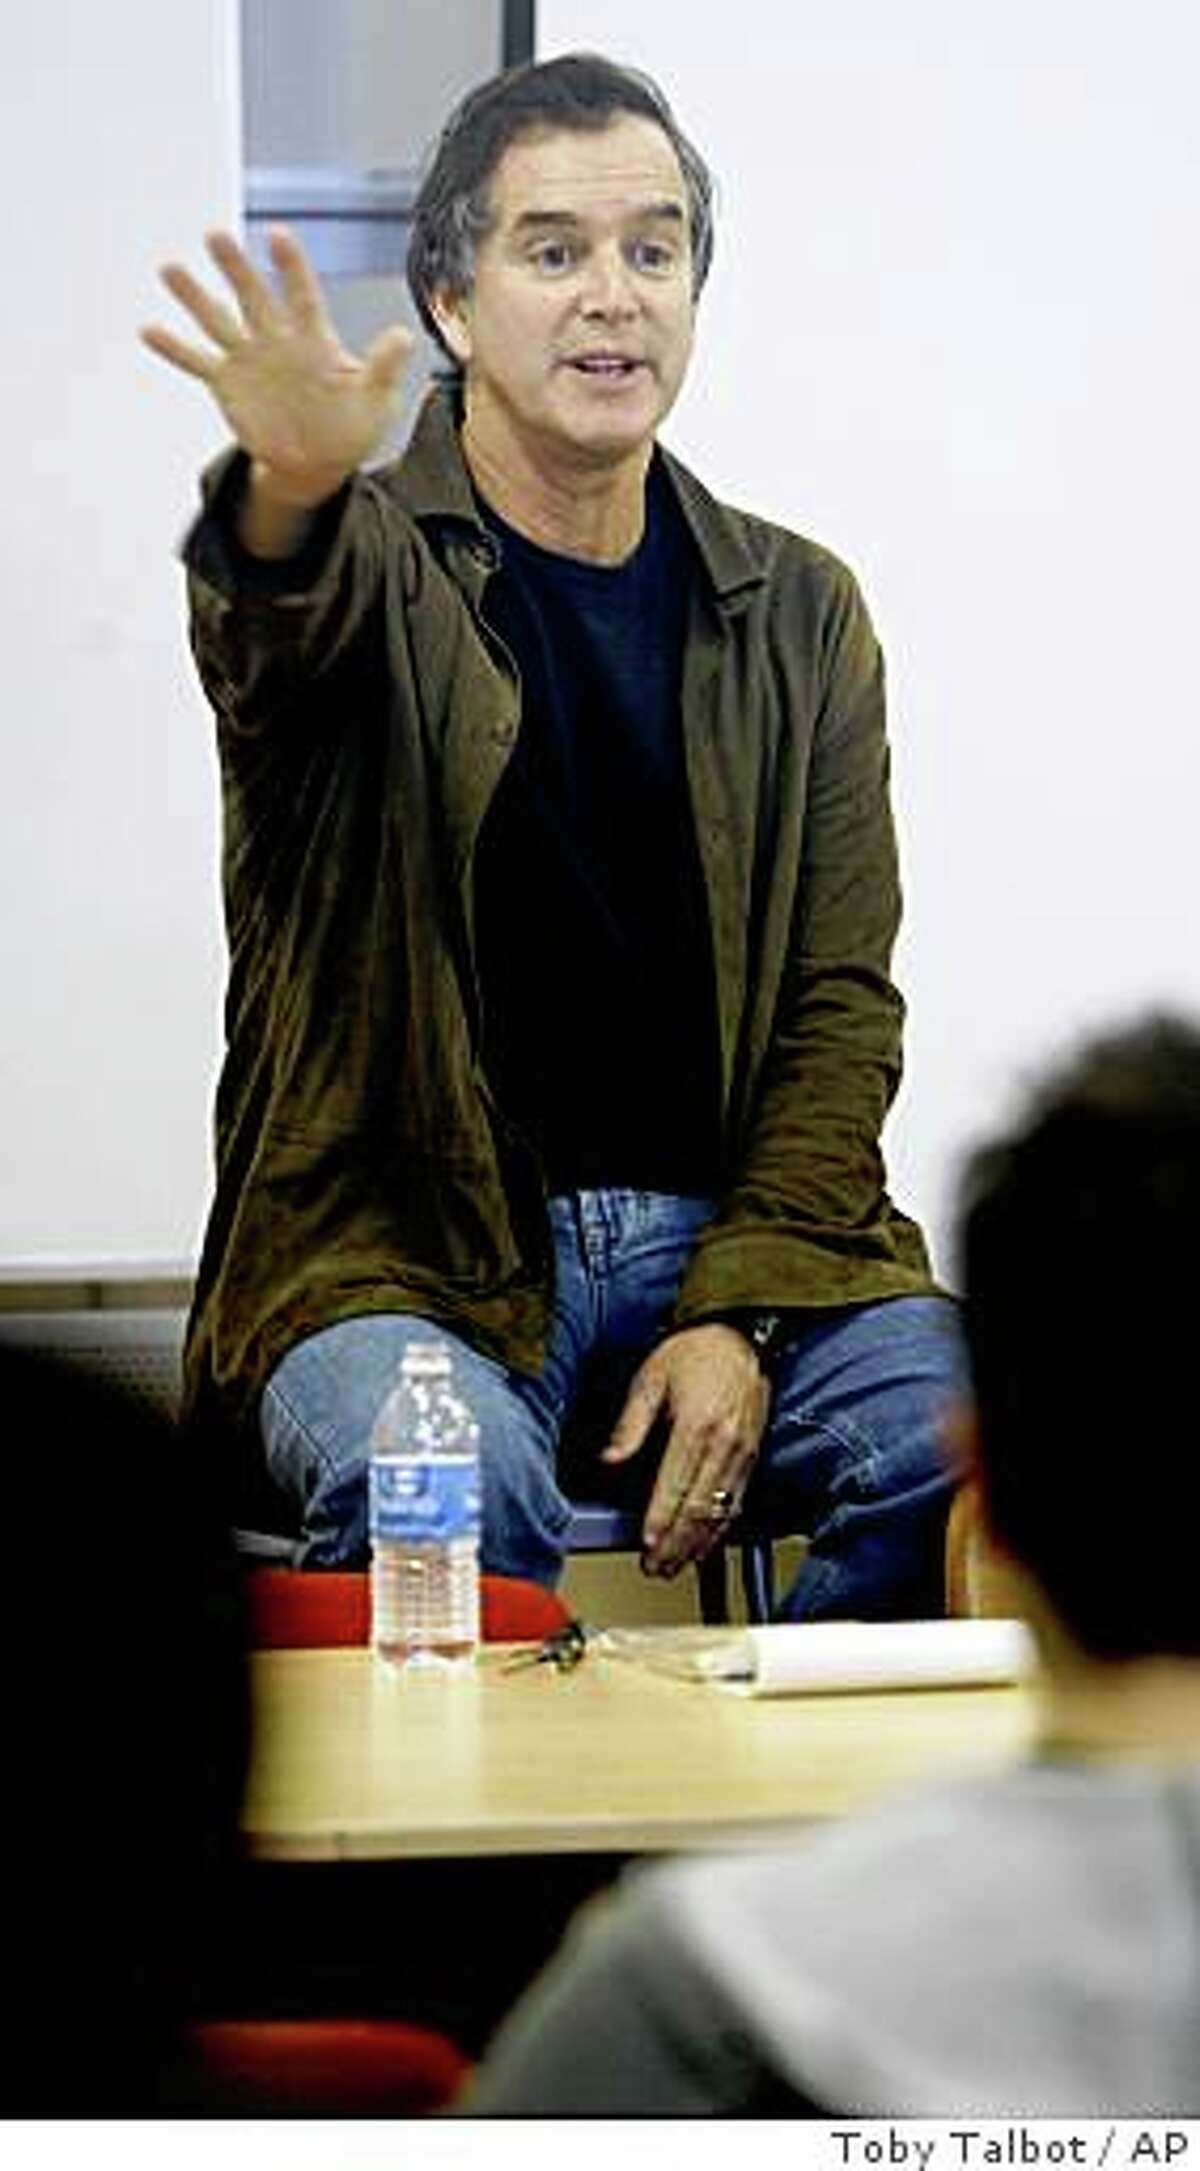 Garry Trudeau gestures as he speaks to students at the Center for Cartoon Studies in White River Junction, Vt., Monday, Oct. 22, 2007.